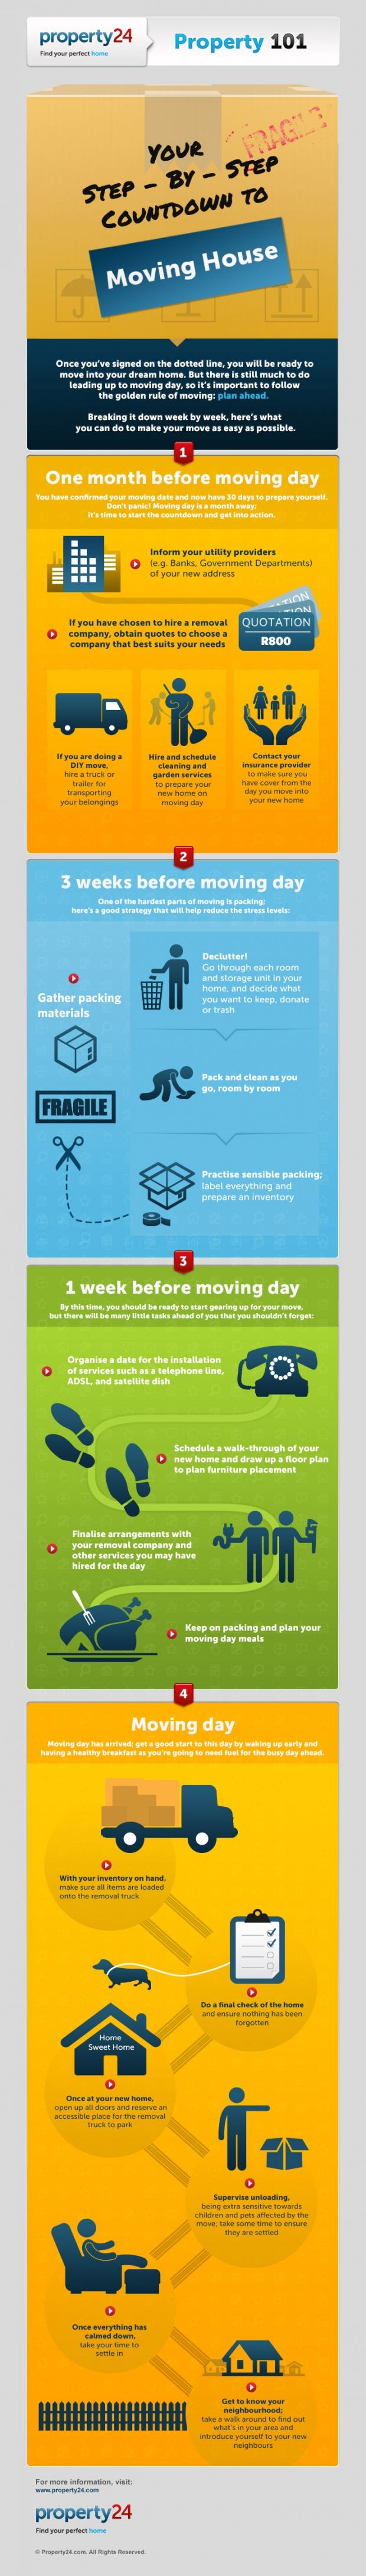 Moving home step by step [Infographic] - Nerdgraph Infographics